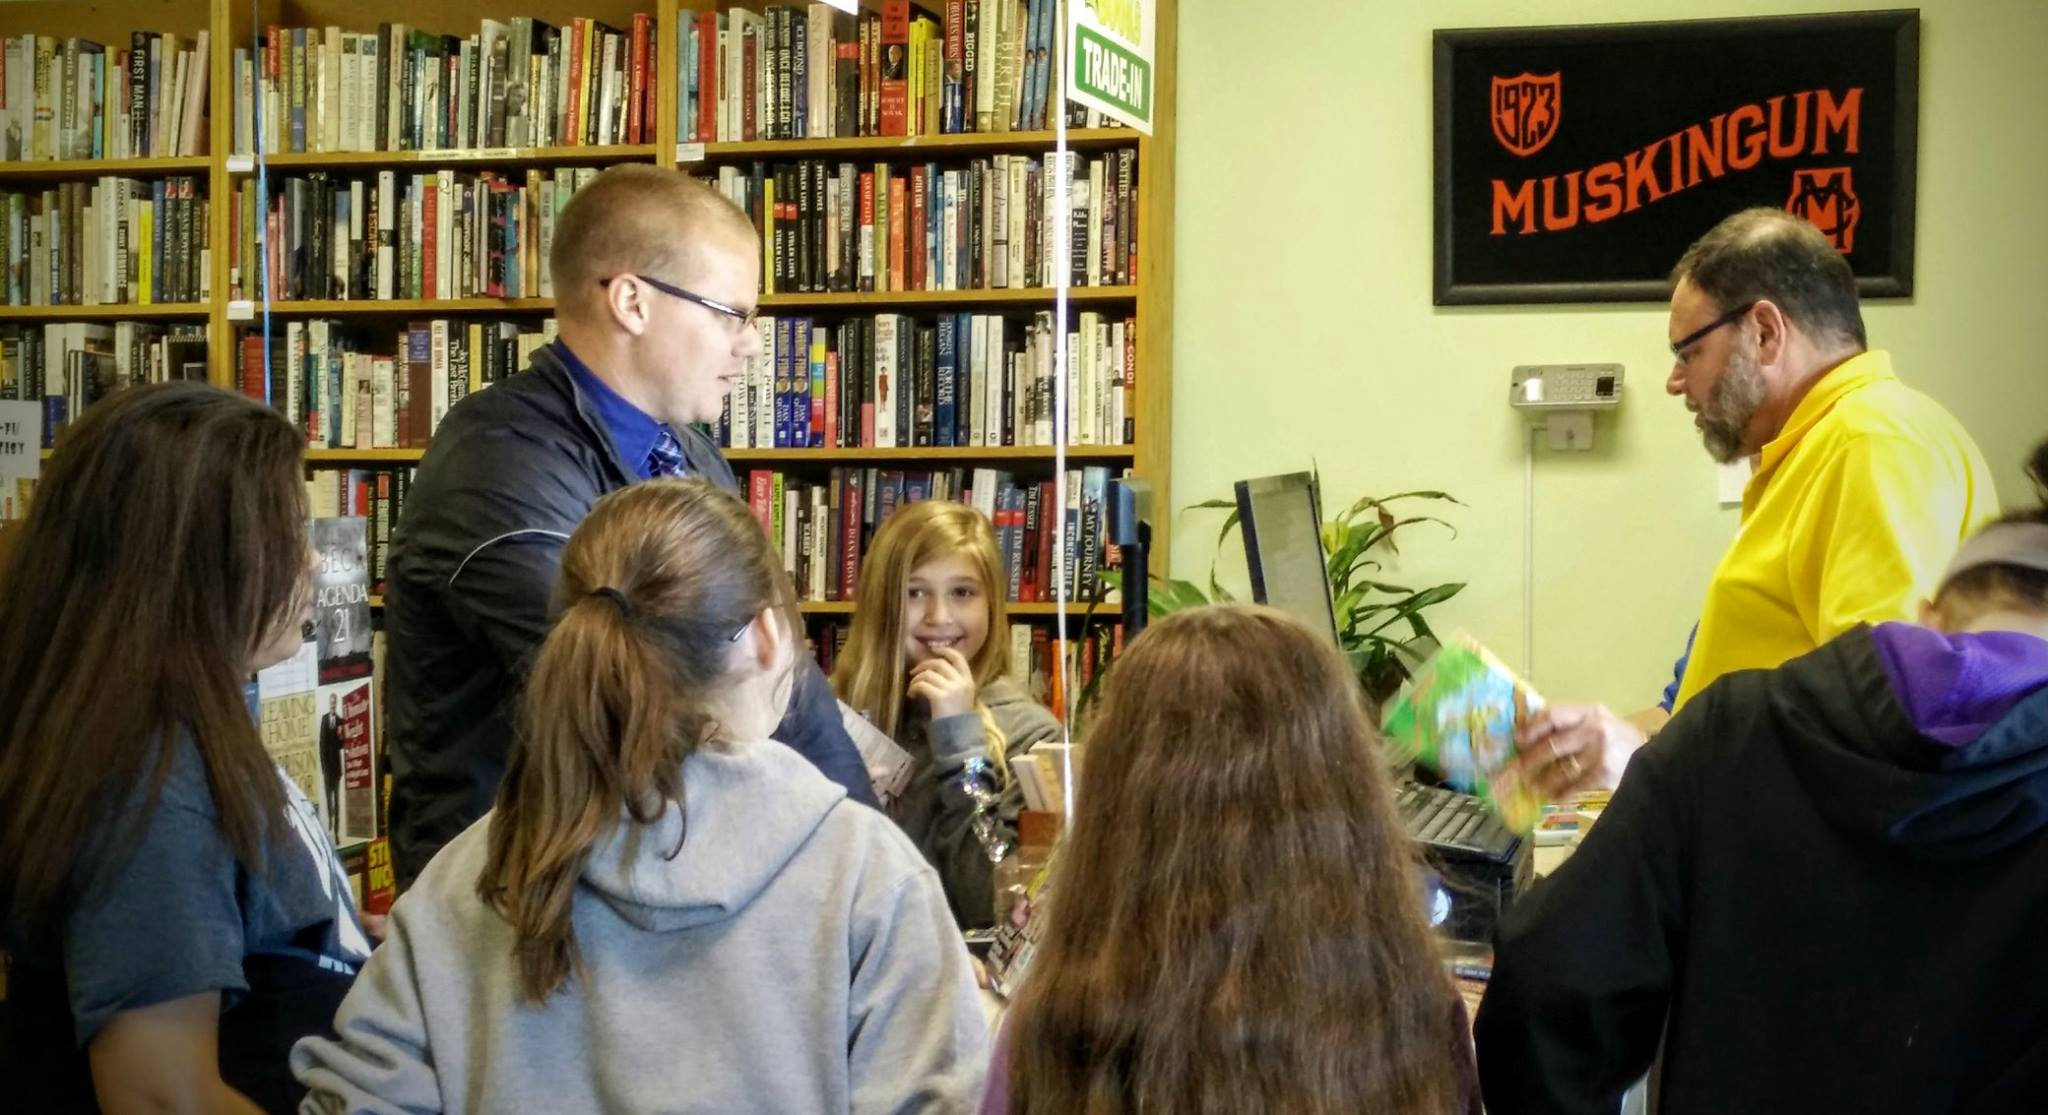 The 2016 champions of the Battle of the Books visit a local bookstore for their $100 shopping spree!